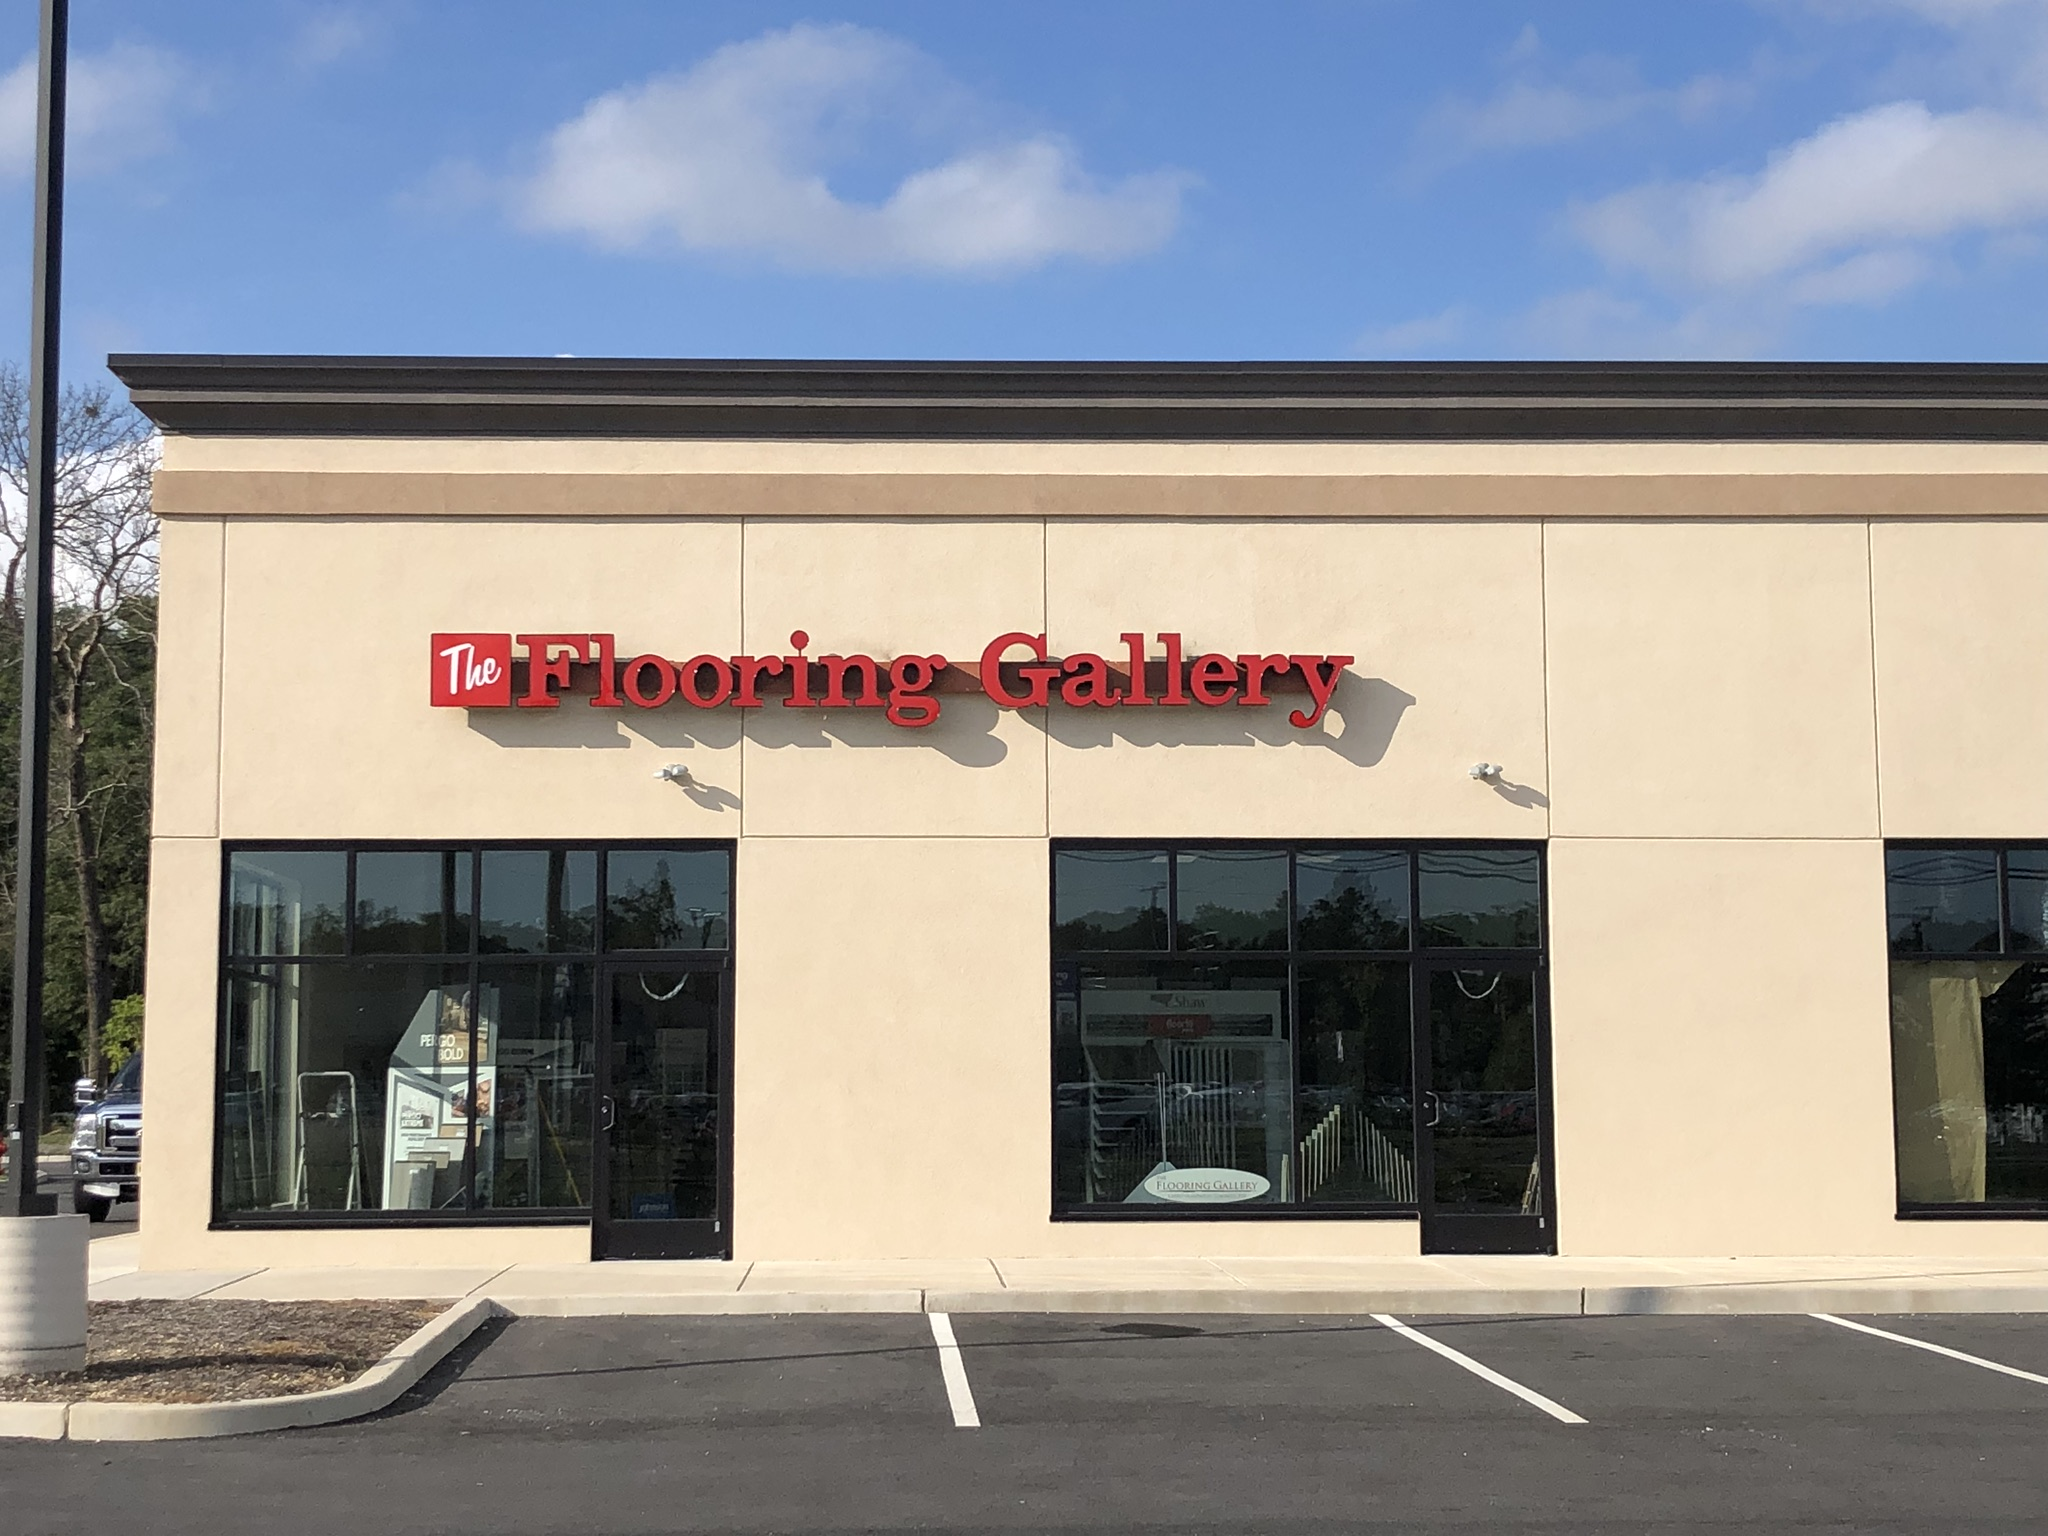 Flooring Gallery - 6206 E Black Horse Pike, Egg Harbor Township, NJ 08234